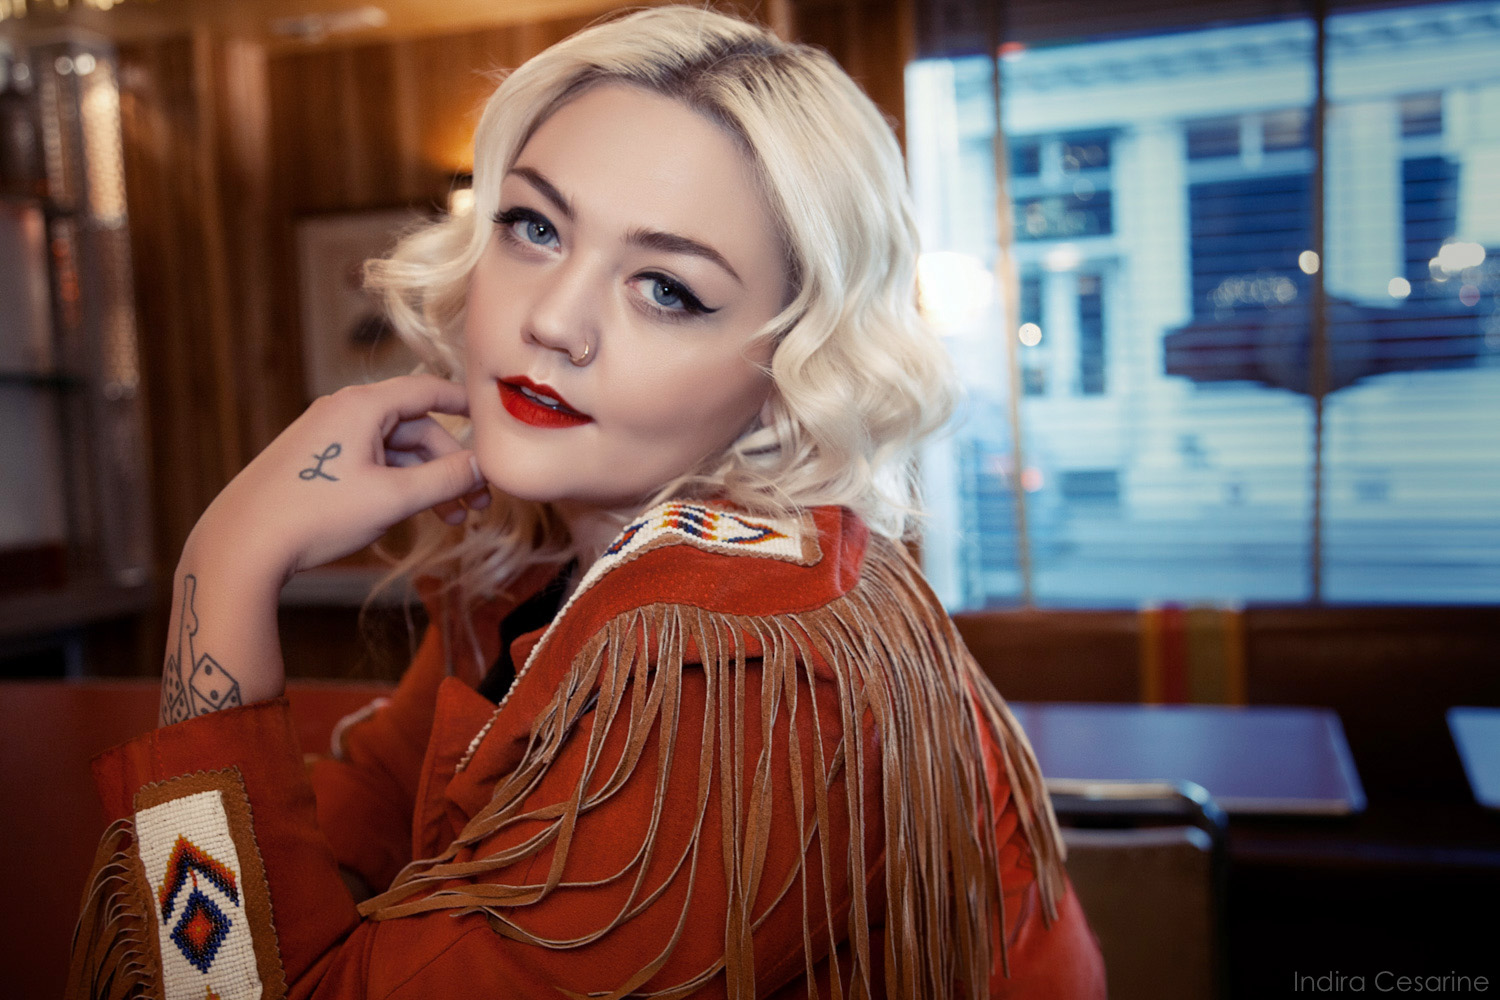 Elle-King-Photography-by-Indira-Cesarine-003x.jpg